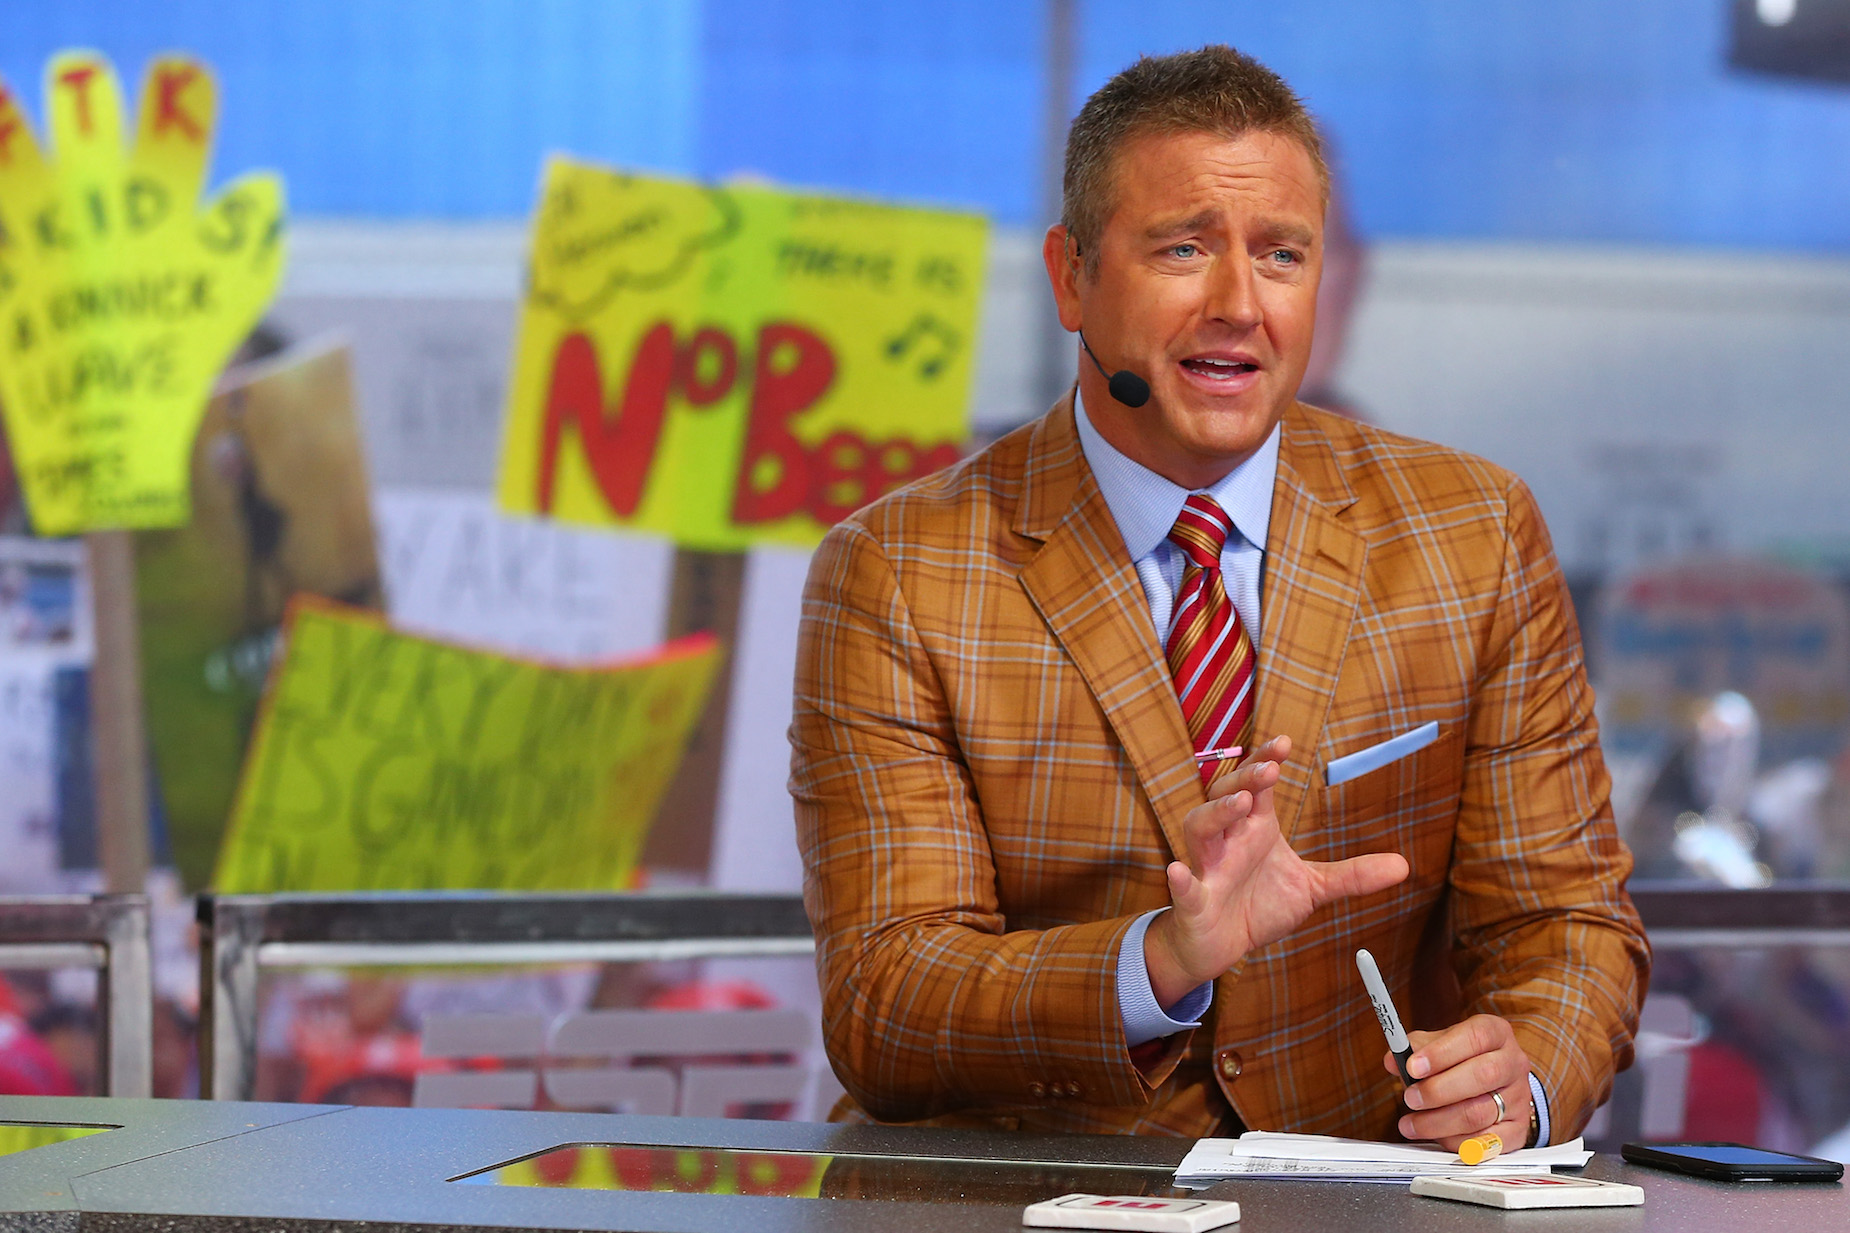 Kirk Herbstreit had to leave Ohio after some issues with Ohio State fans.